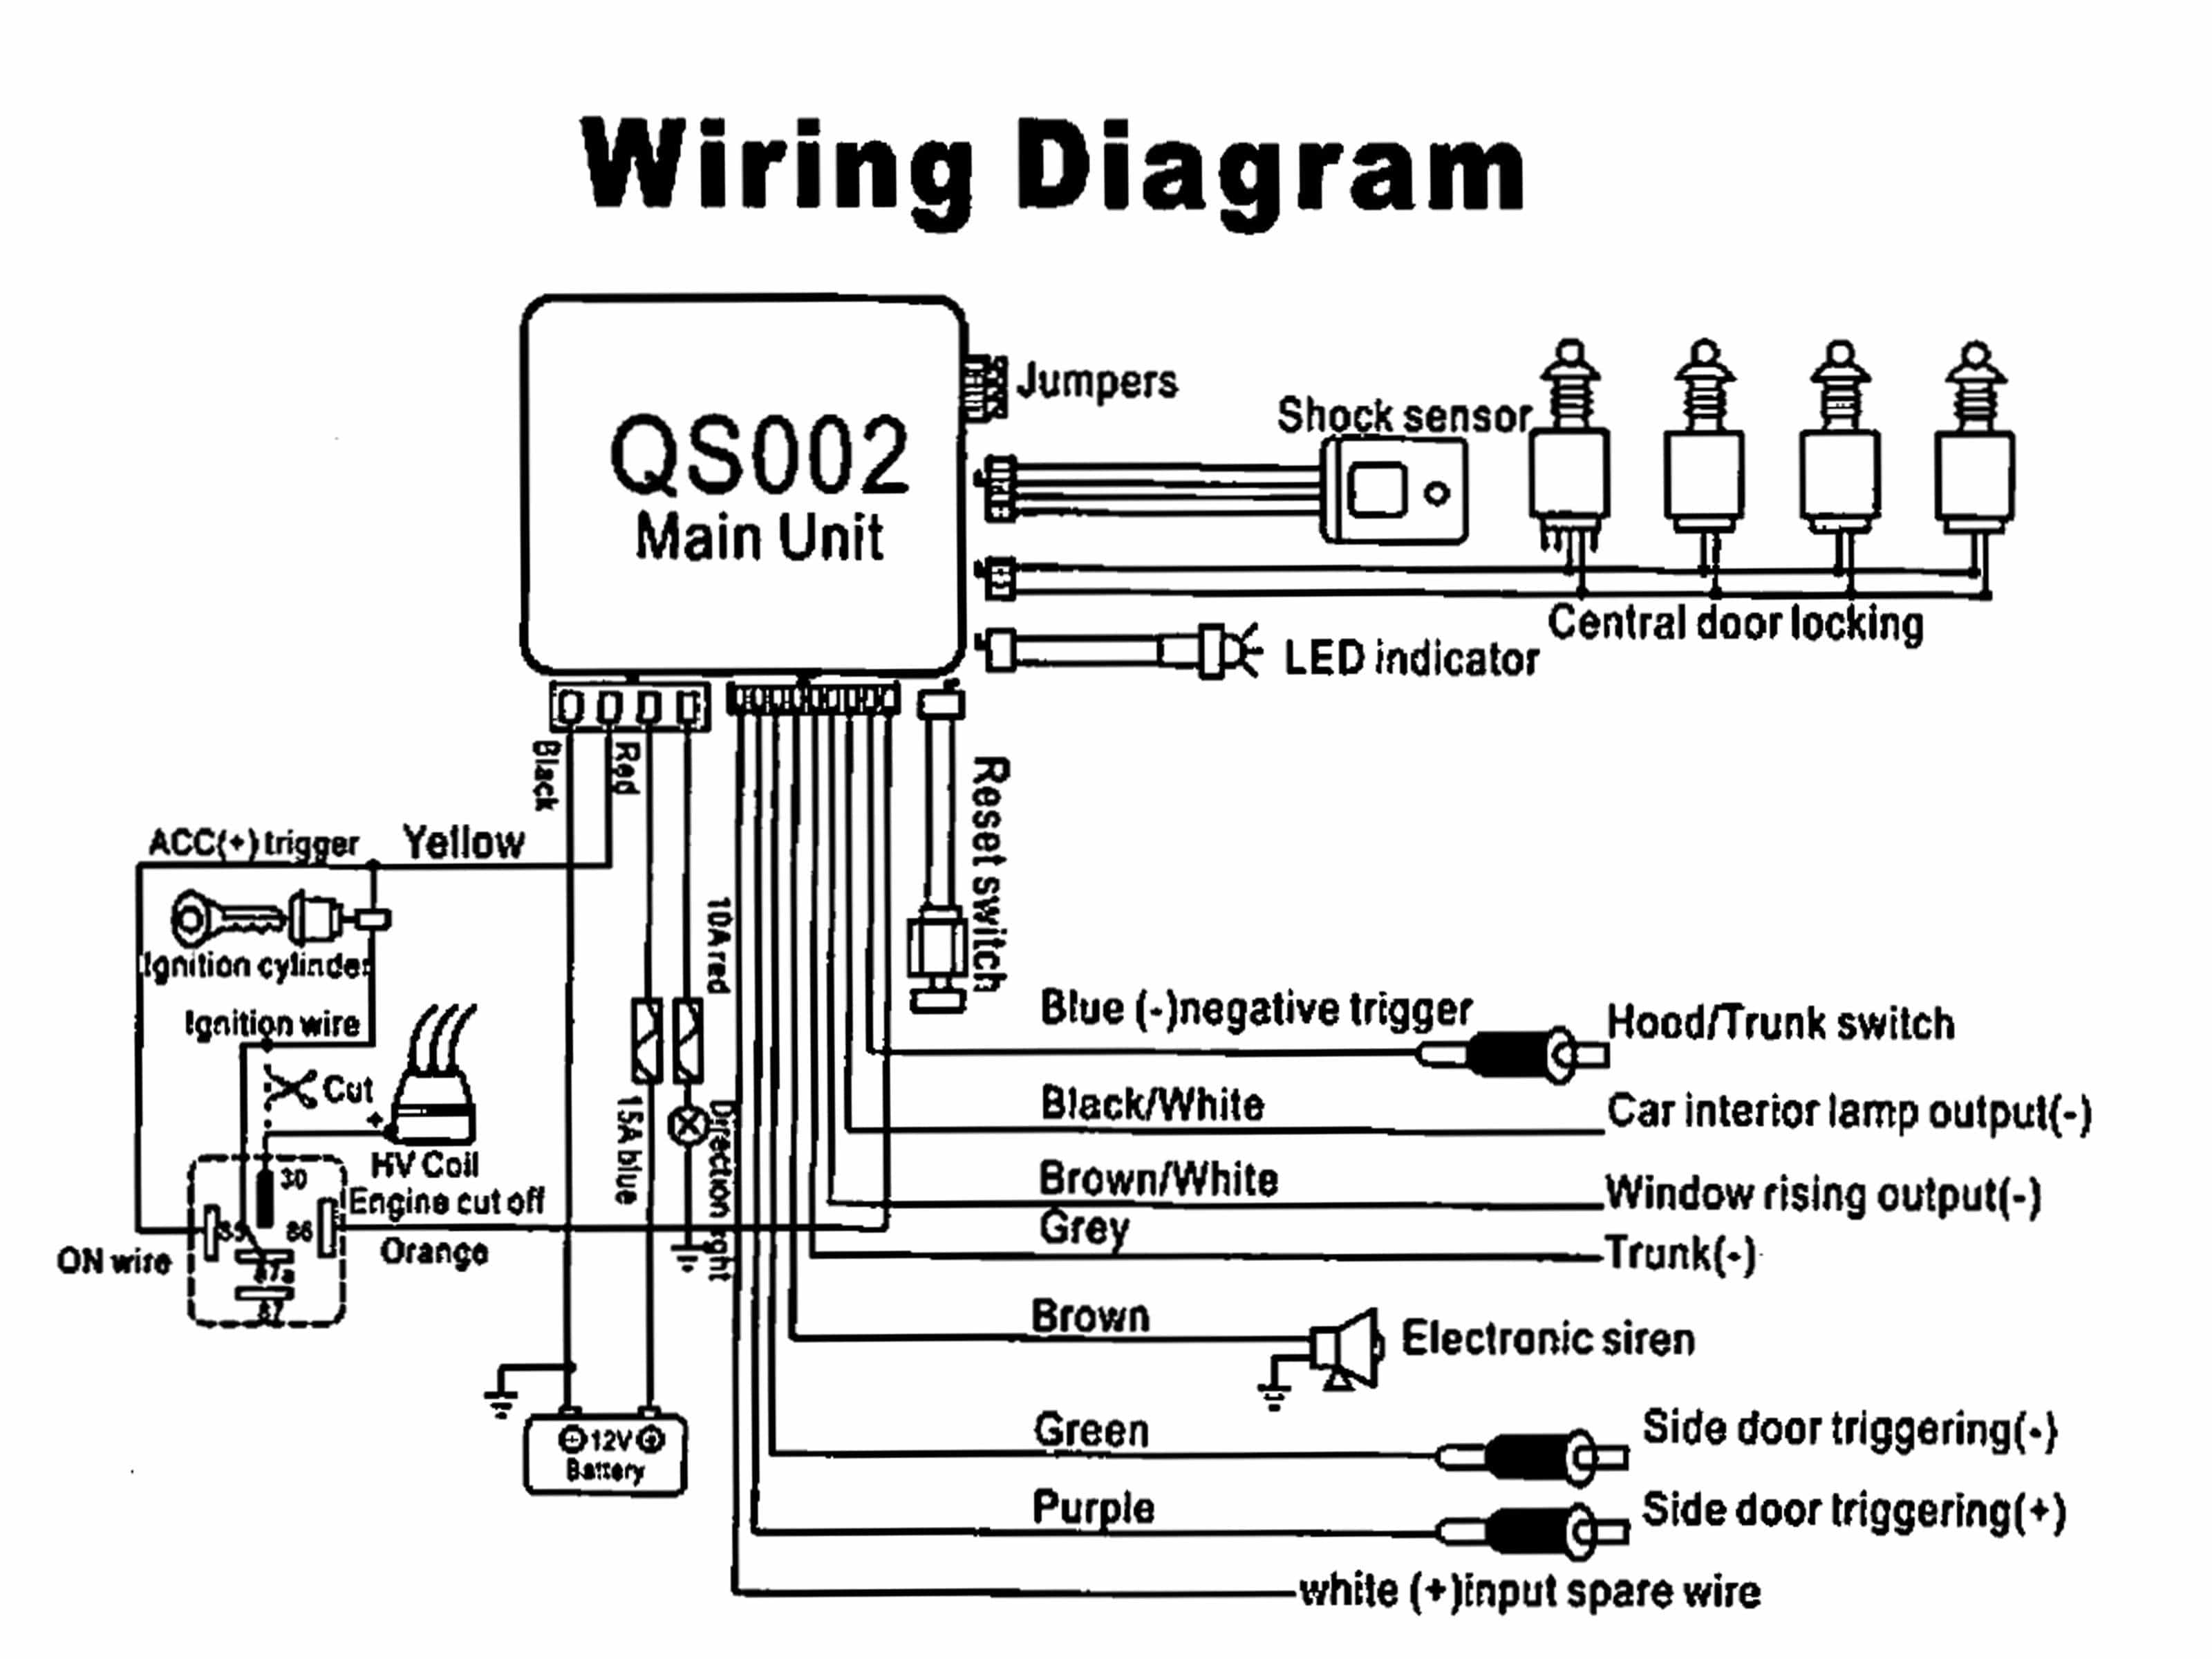 AlarmInstructions_7a98a2bc d189 4c5b 99b3 c774abdbef28 clarion cmd5 wiring diagram wiring diagram shrutiradio Car Stereo Wiring Colors at n-0.co